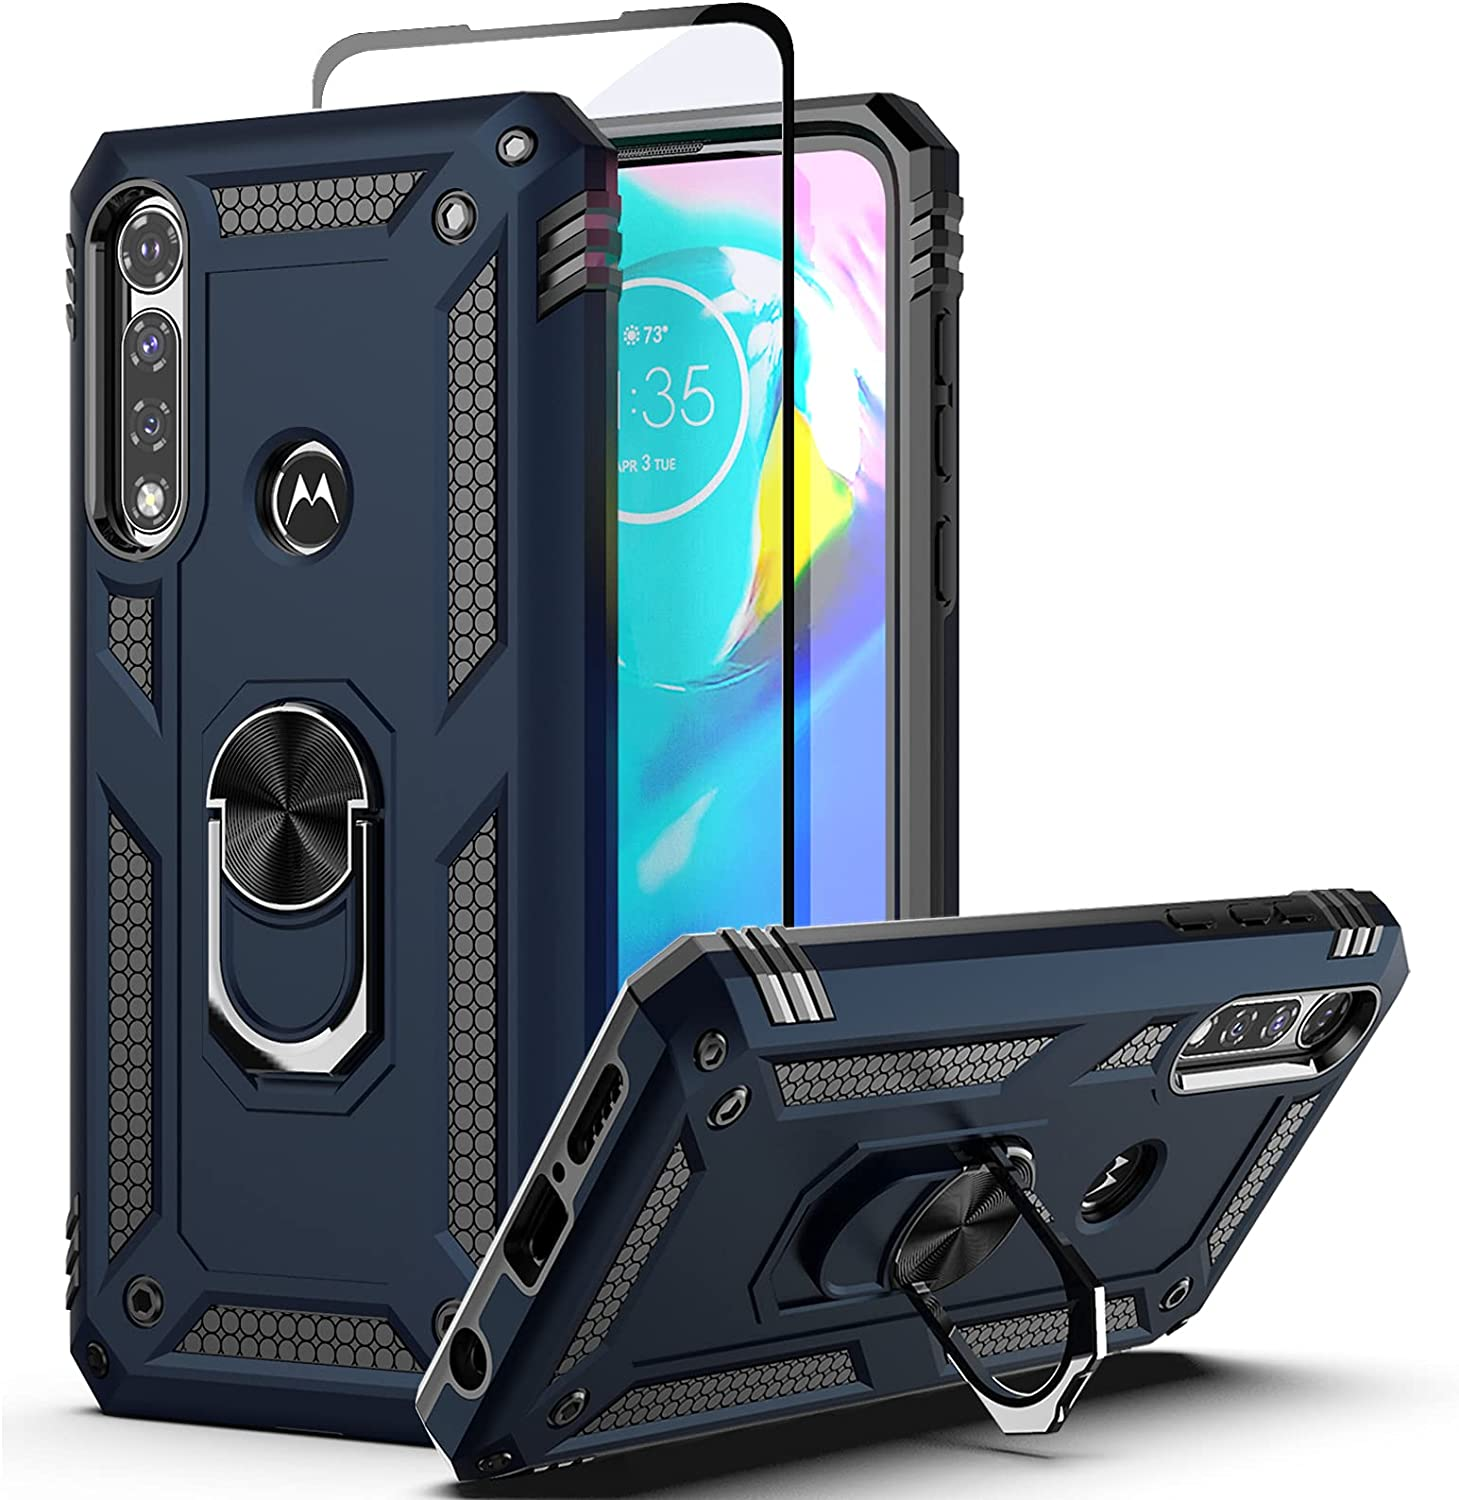 Dretal Moto G Power Case with Tempered Glass Screen Protector, Military Grade Shockproof Protective Case Cover with Rotating Holder Kickstand for Motorola Moto G Power 2020 (JS-Navy)